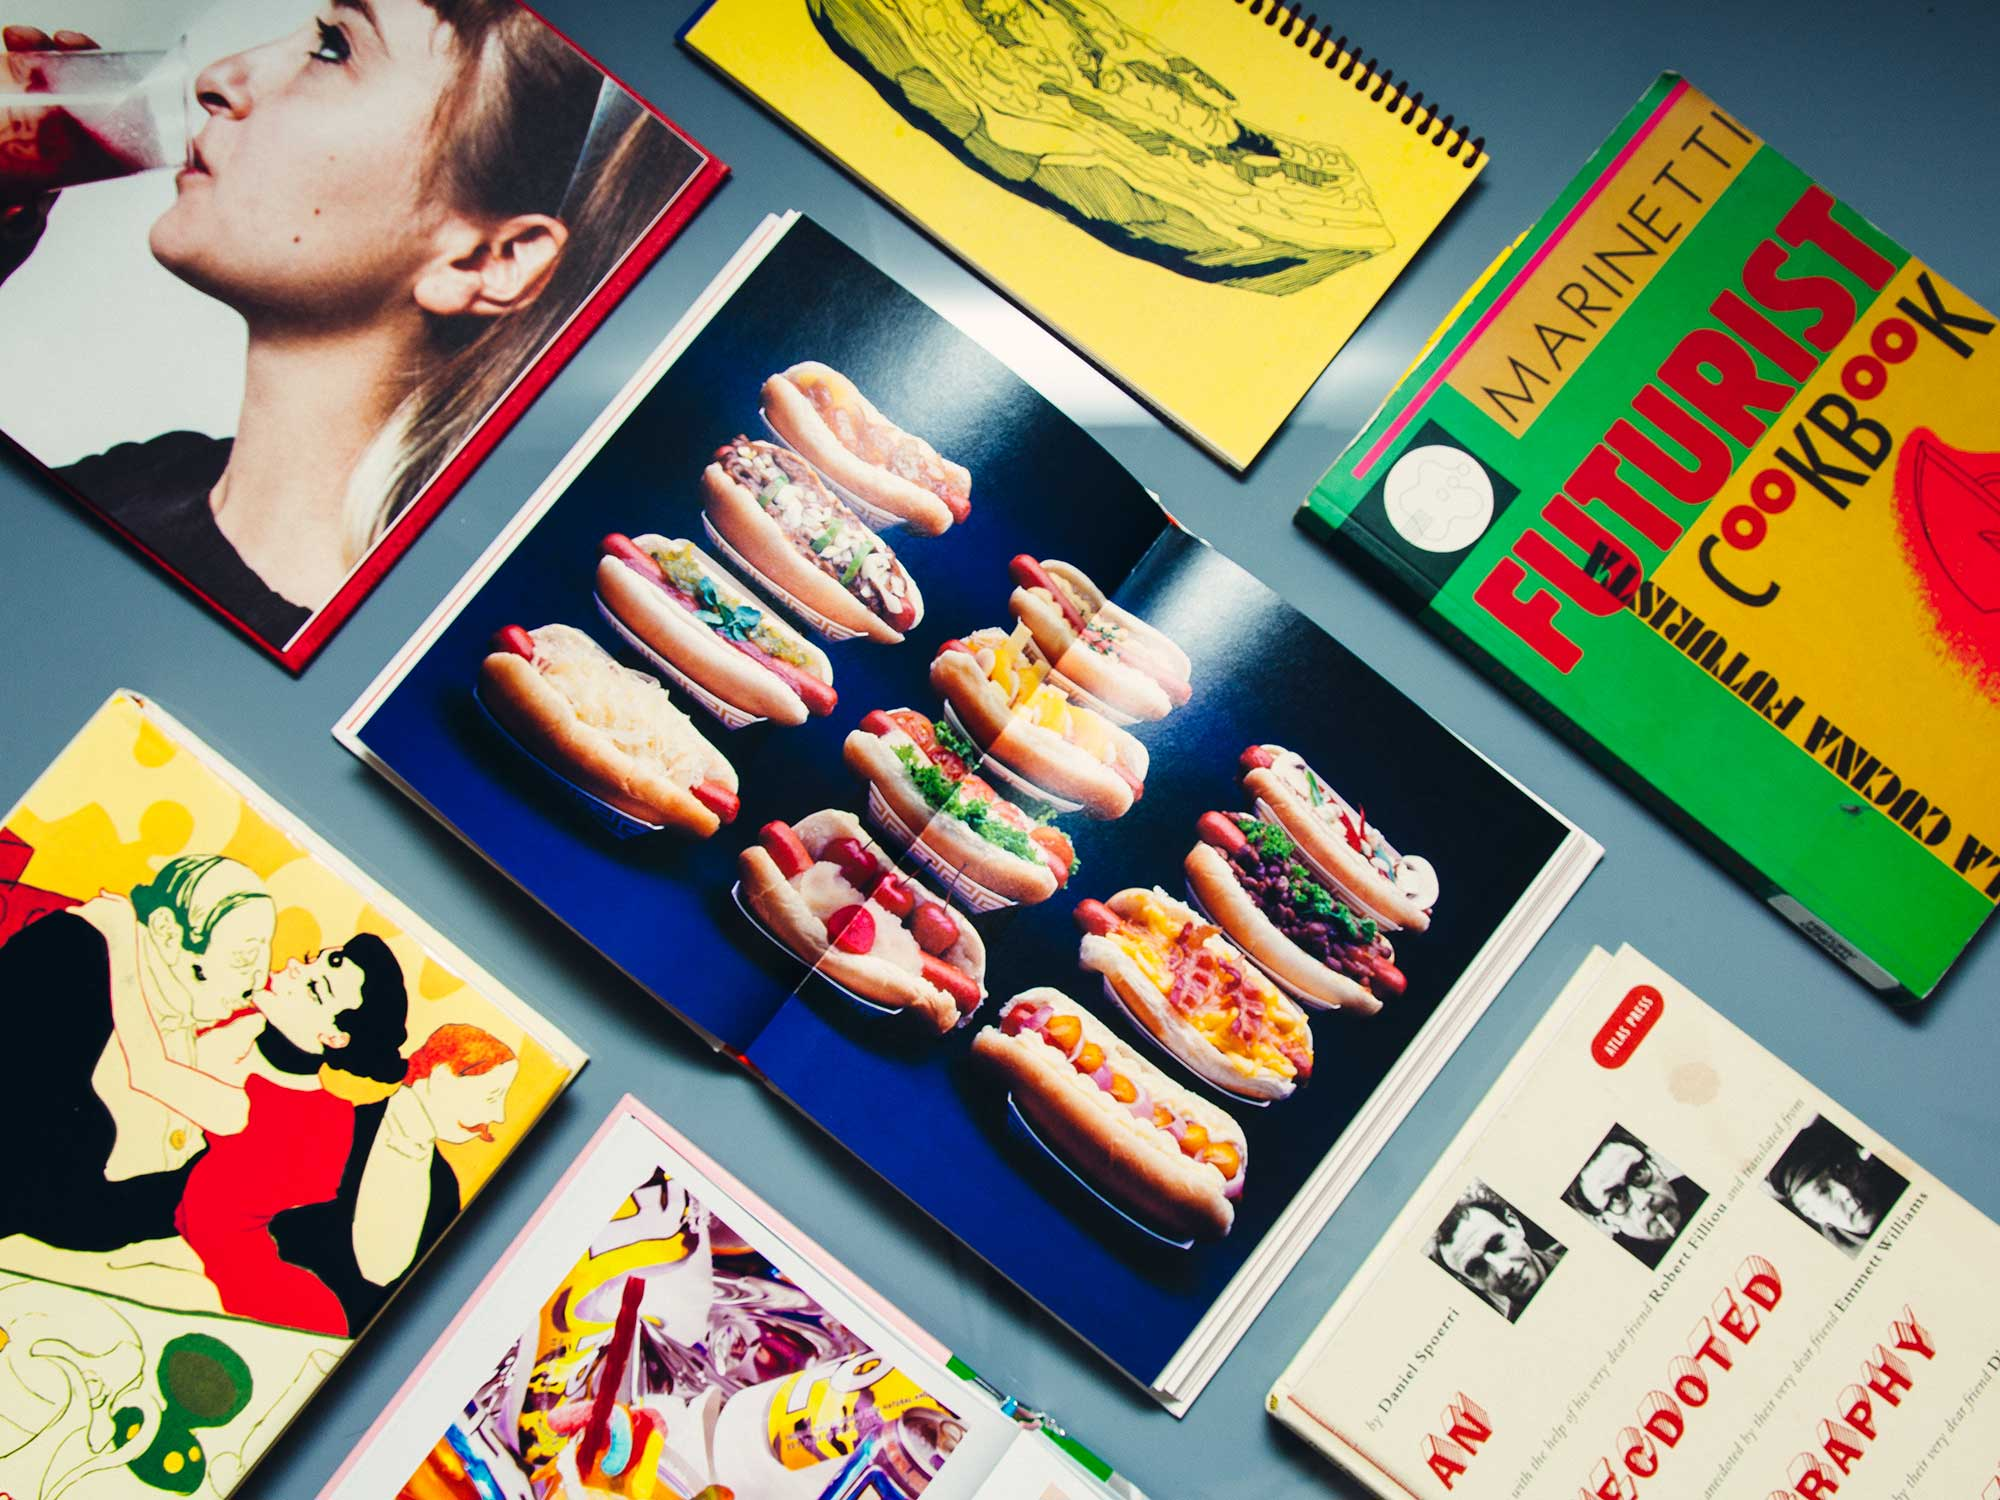 SAVEUR Gift Guides: Food-Meets-Art Books for the Design-Minded